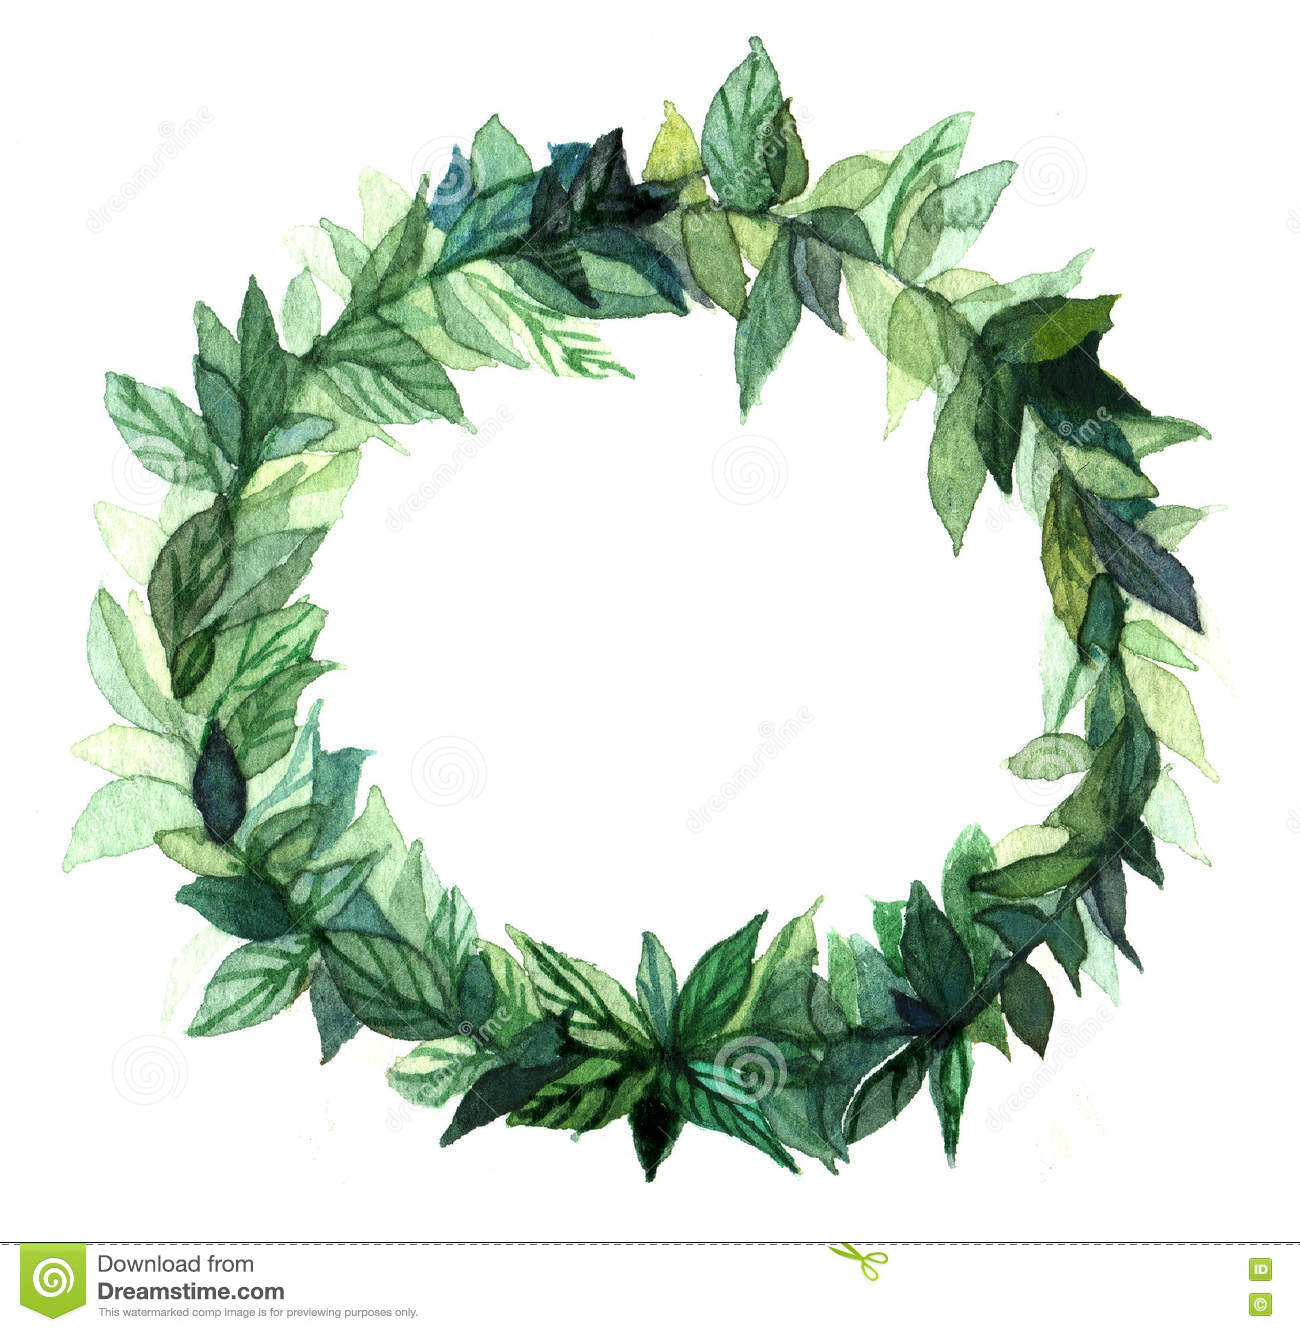 watercolor wreath circle frame spices green floral branches white background illustration banner greeting cards 78713323